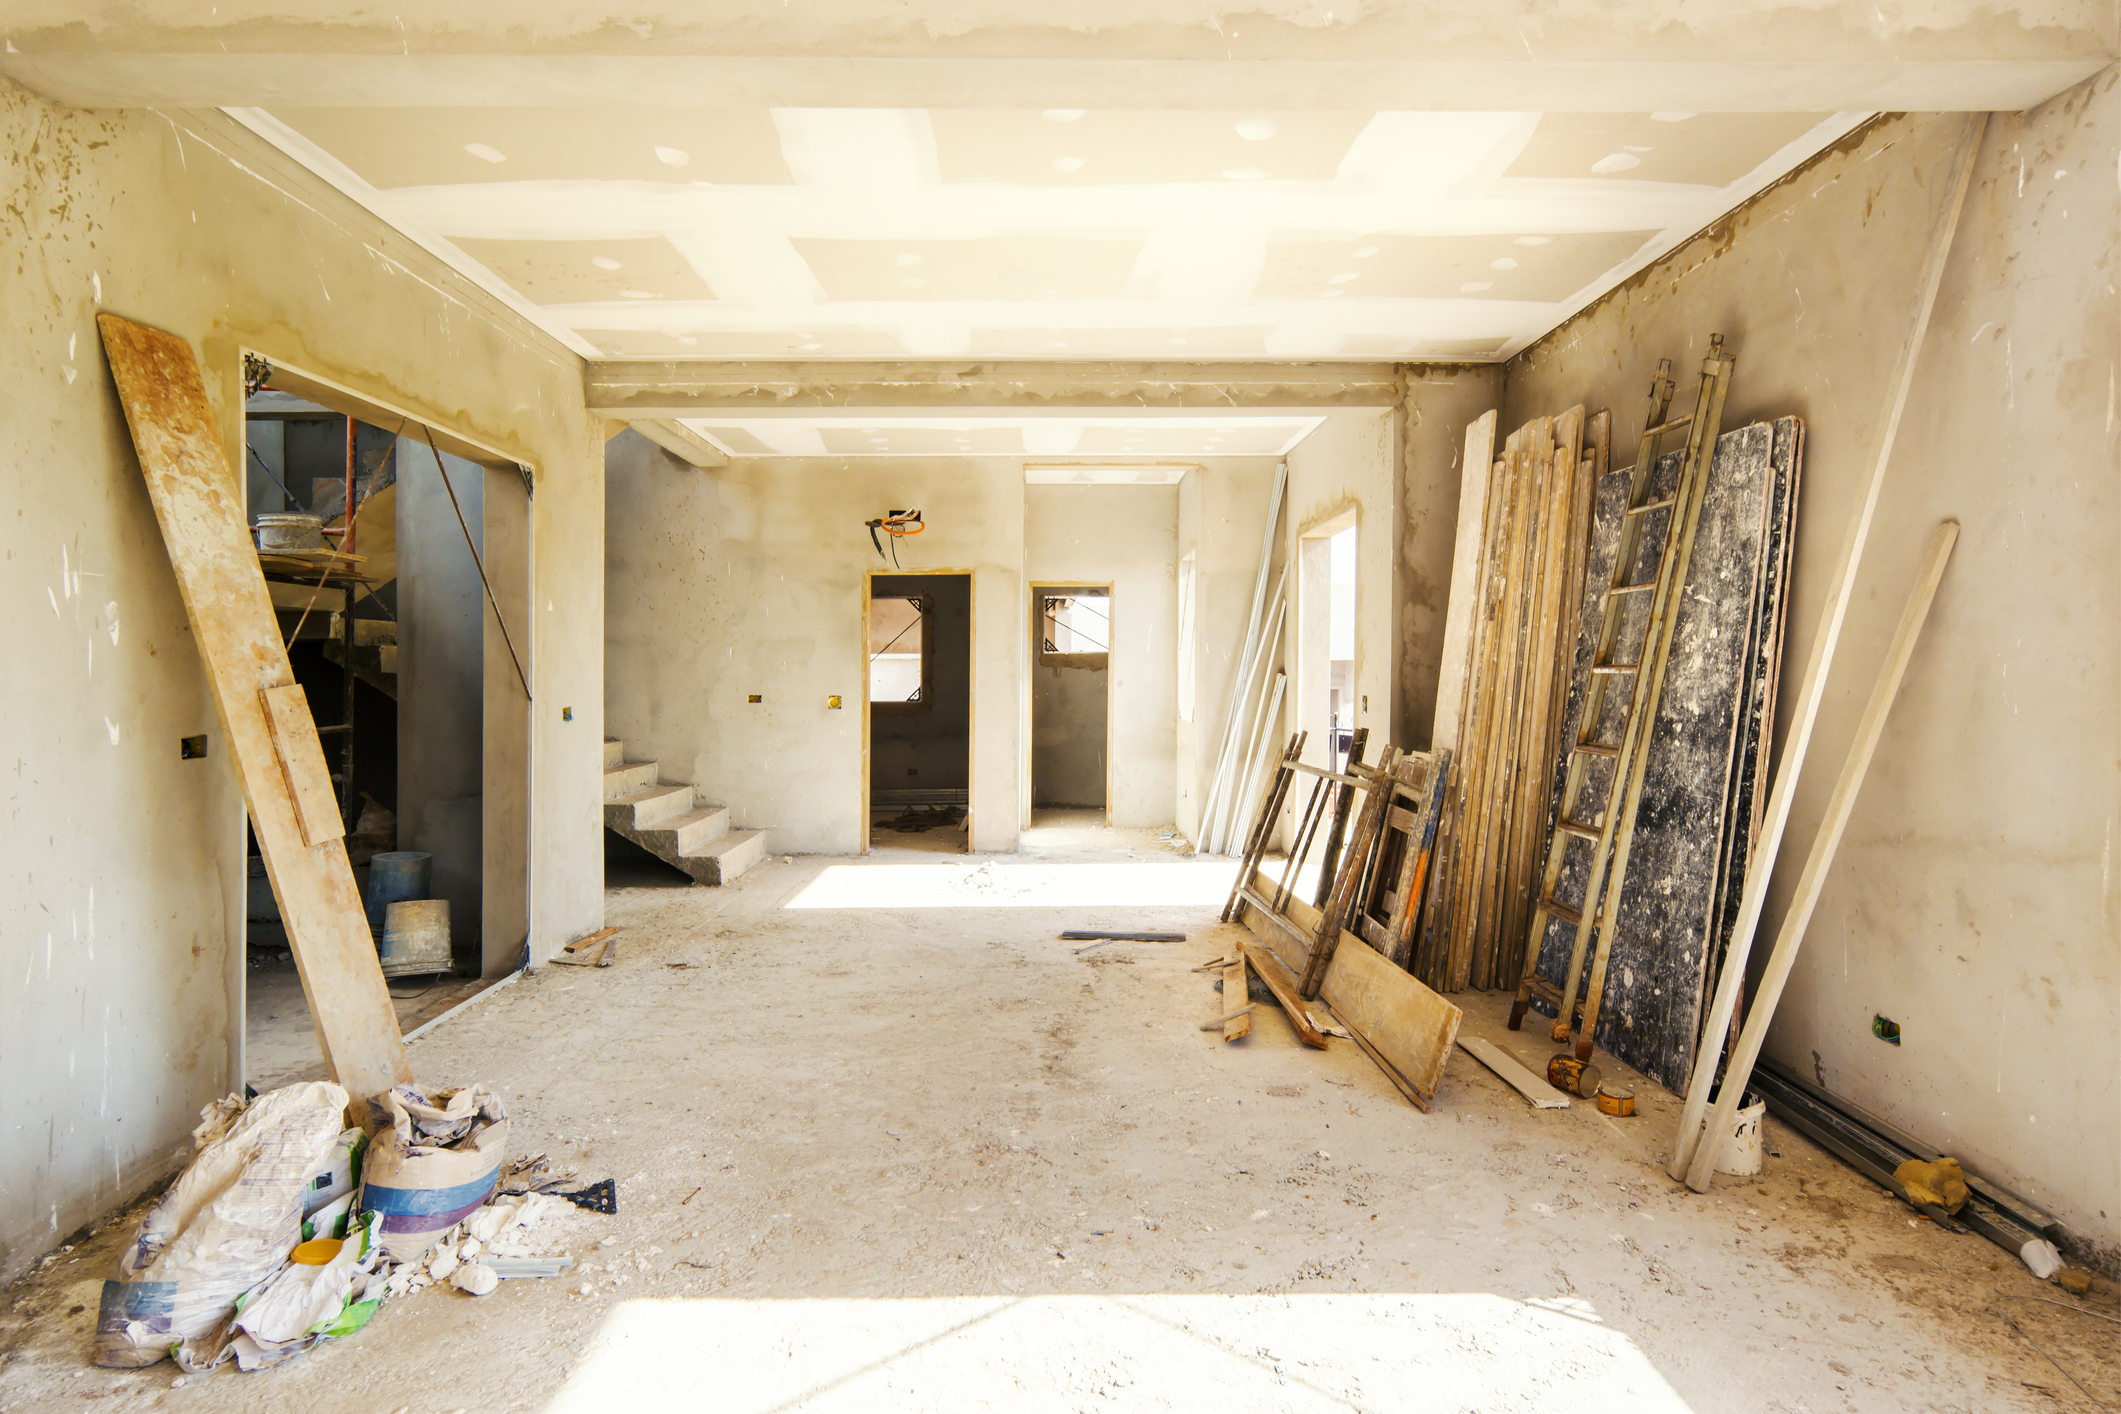 Underinsurance & Claims: How much would it cost to rebuild your property?